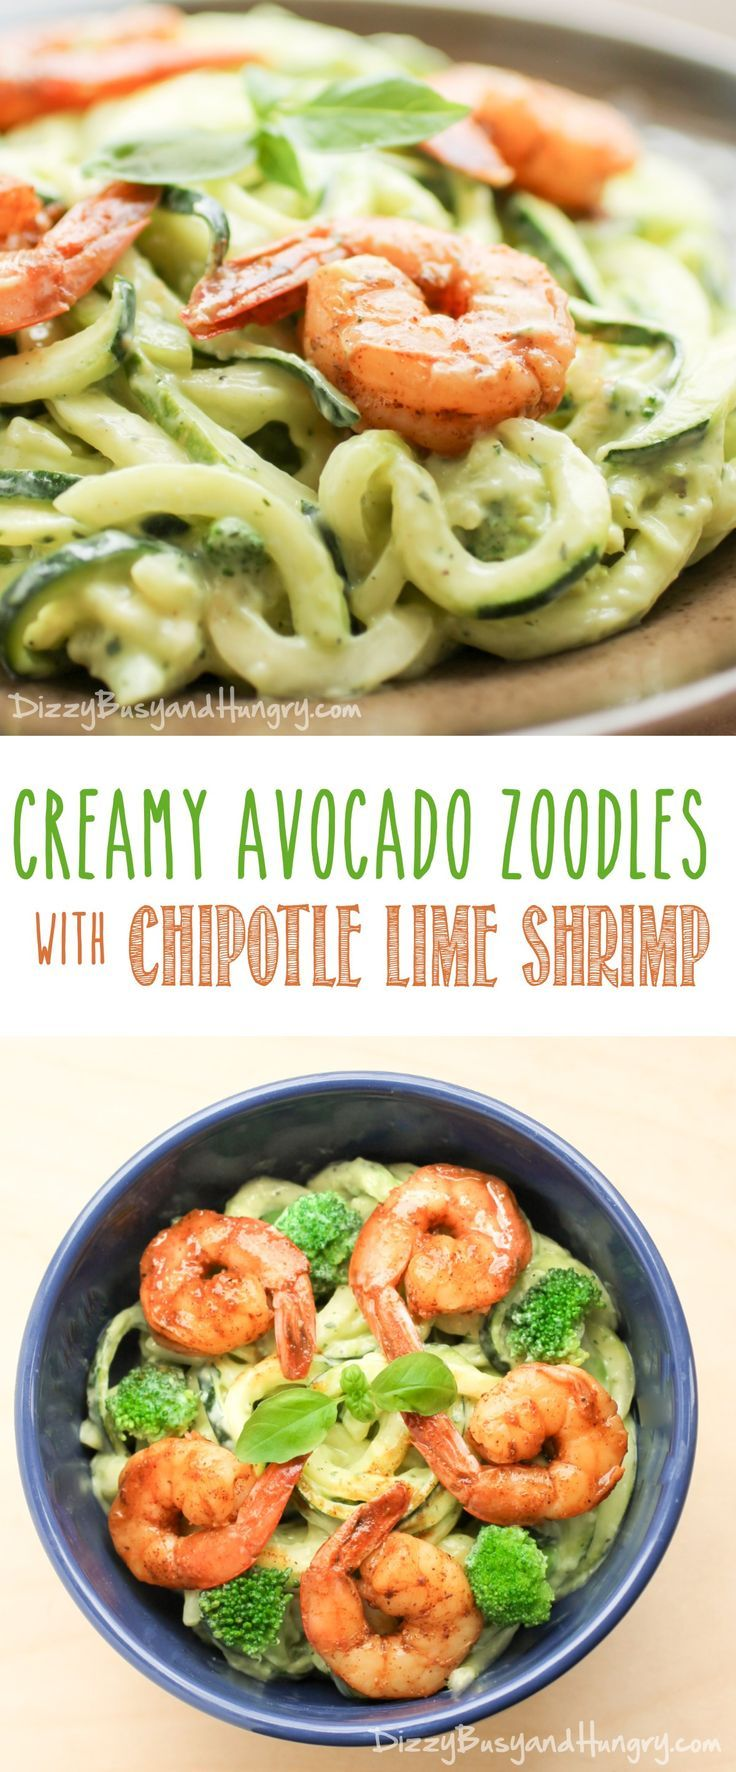 Creamy Avocado Zoodles with Chipotle Lime Shrimp | DizzyBusyandHungry.com - Zucchini noodles smothered in a creamy avocado sauce and topped with zingy, tangy shrimp!